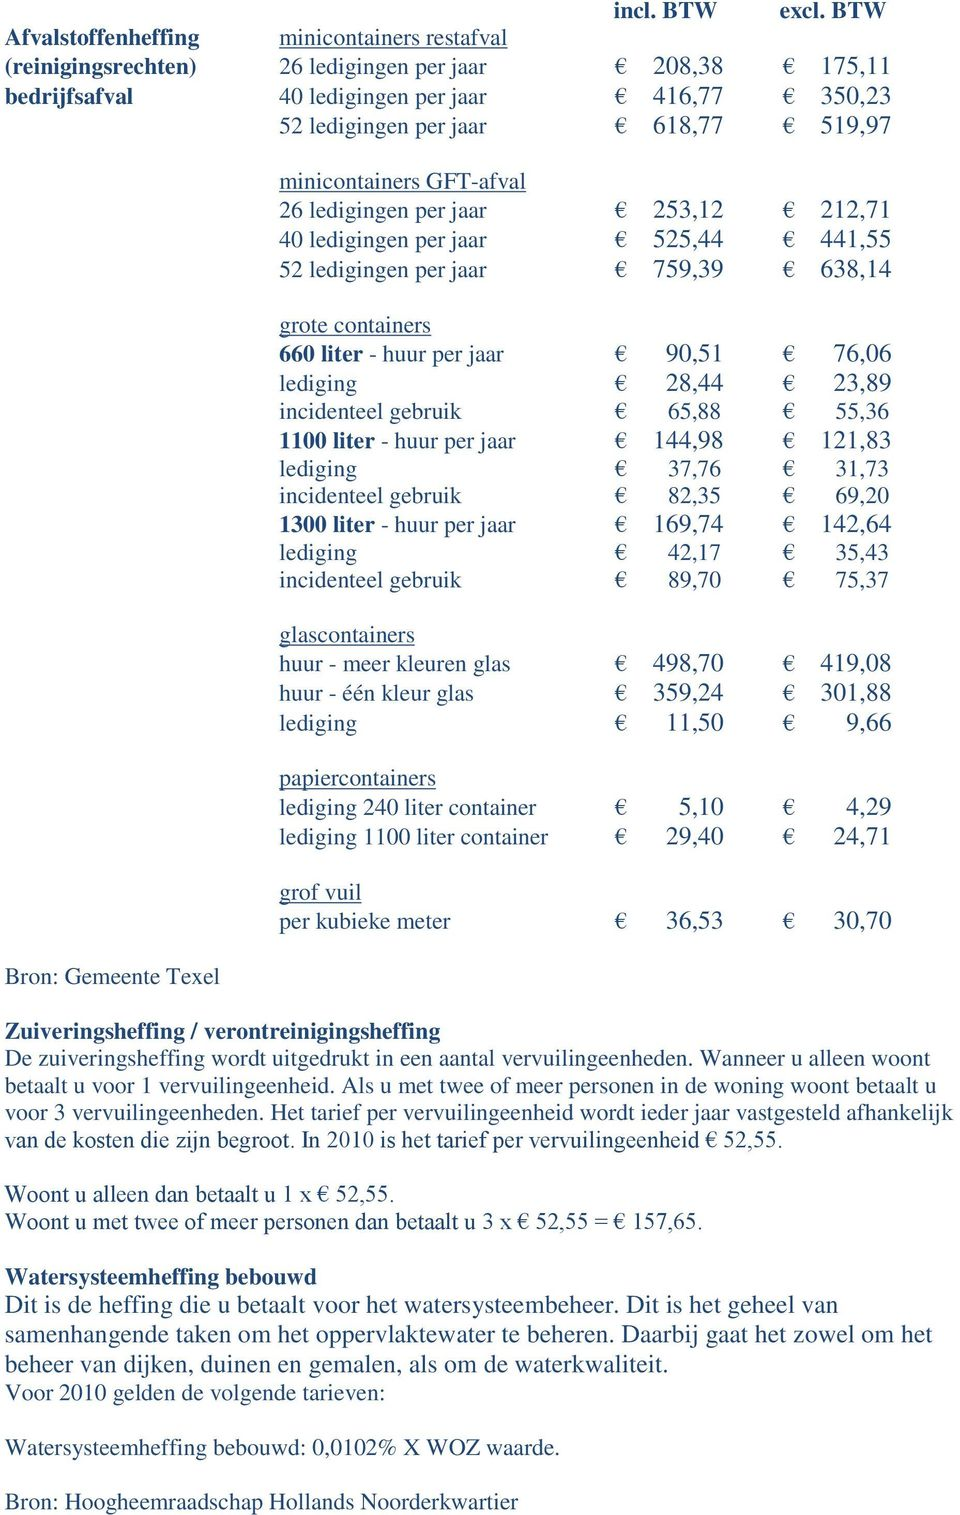 Gemeente Texel minicontainers GFT-afval 26 ledigingen per jaar 253,12 212,71 40 ledigingen per jaar 525,44 441,55 52 ledigingen per jaar 759,39 638,14 grote containers 660 liter - huur per jaar 90,51